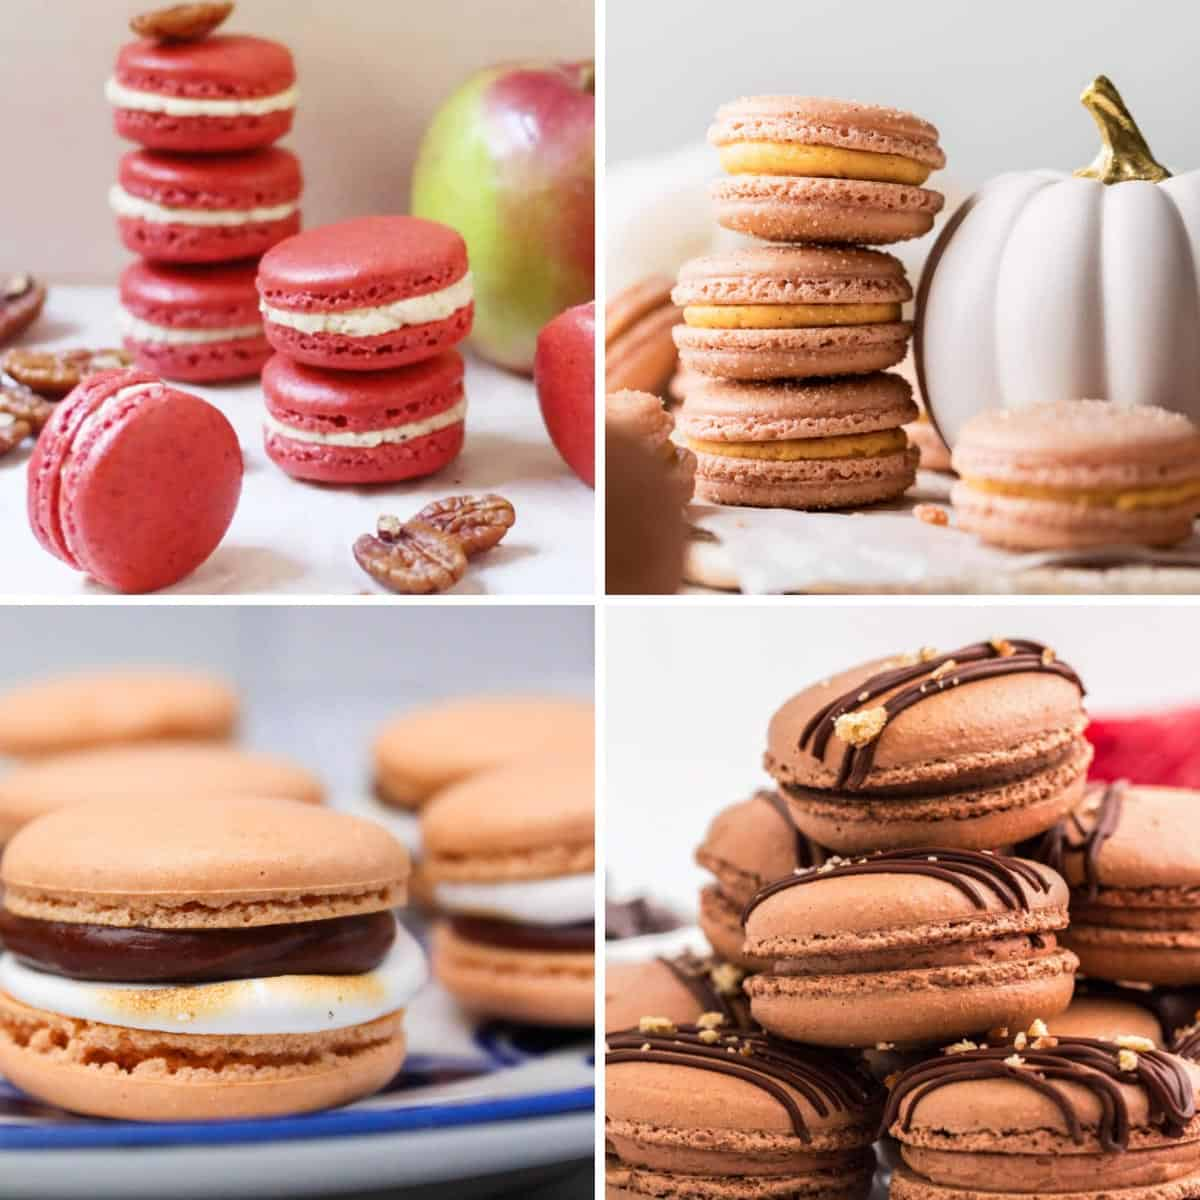 Four fall macaron images in a grid: spiced apple and pecan macarons, pumpkin churro macarons, s'mores macarons, and chocolate macarons.